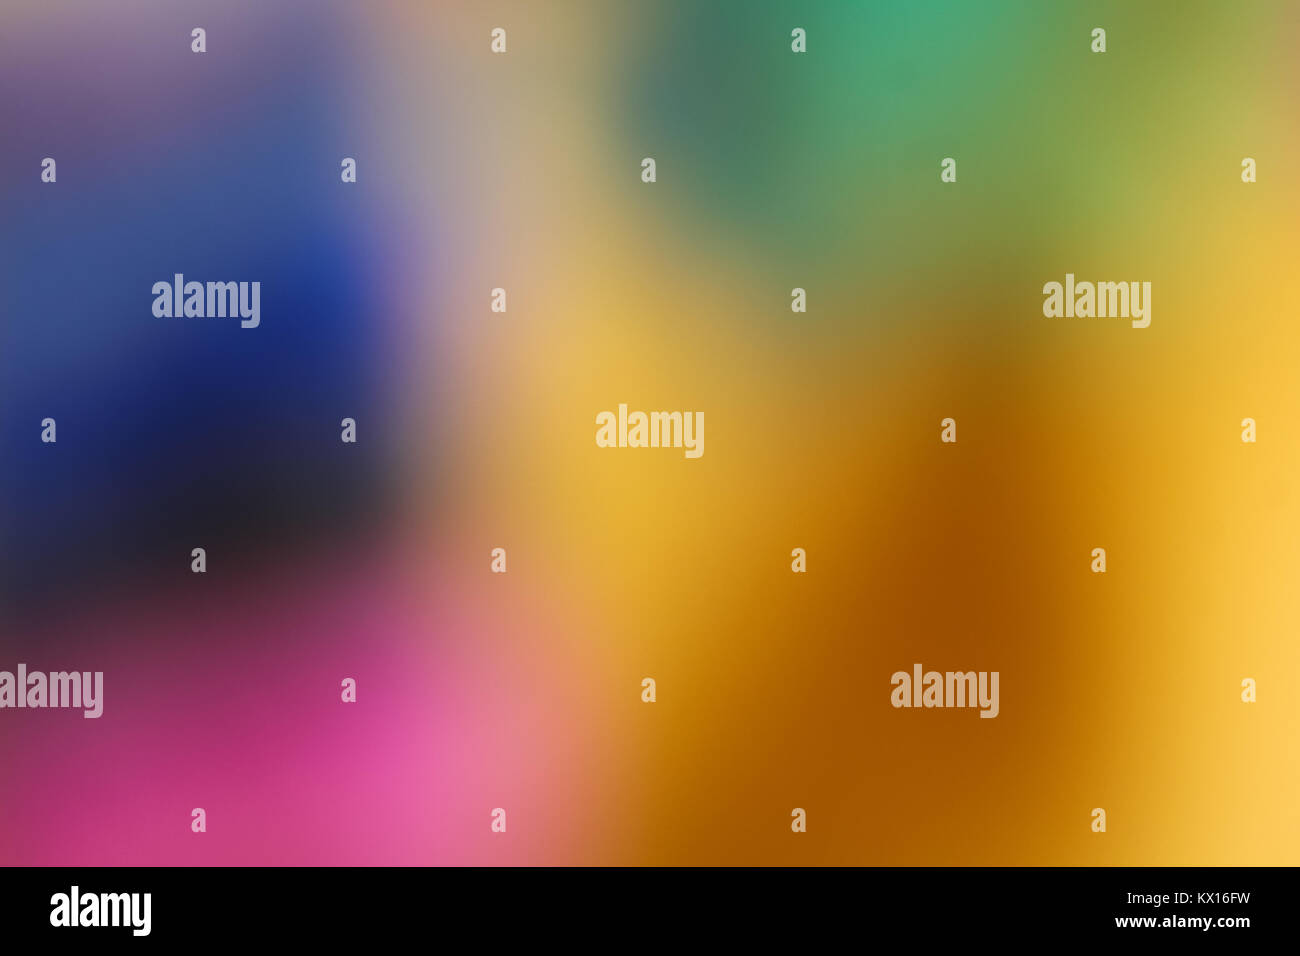 abstract colorful blurred background - Stock Image